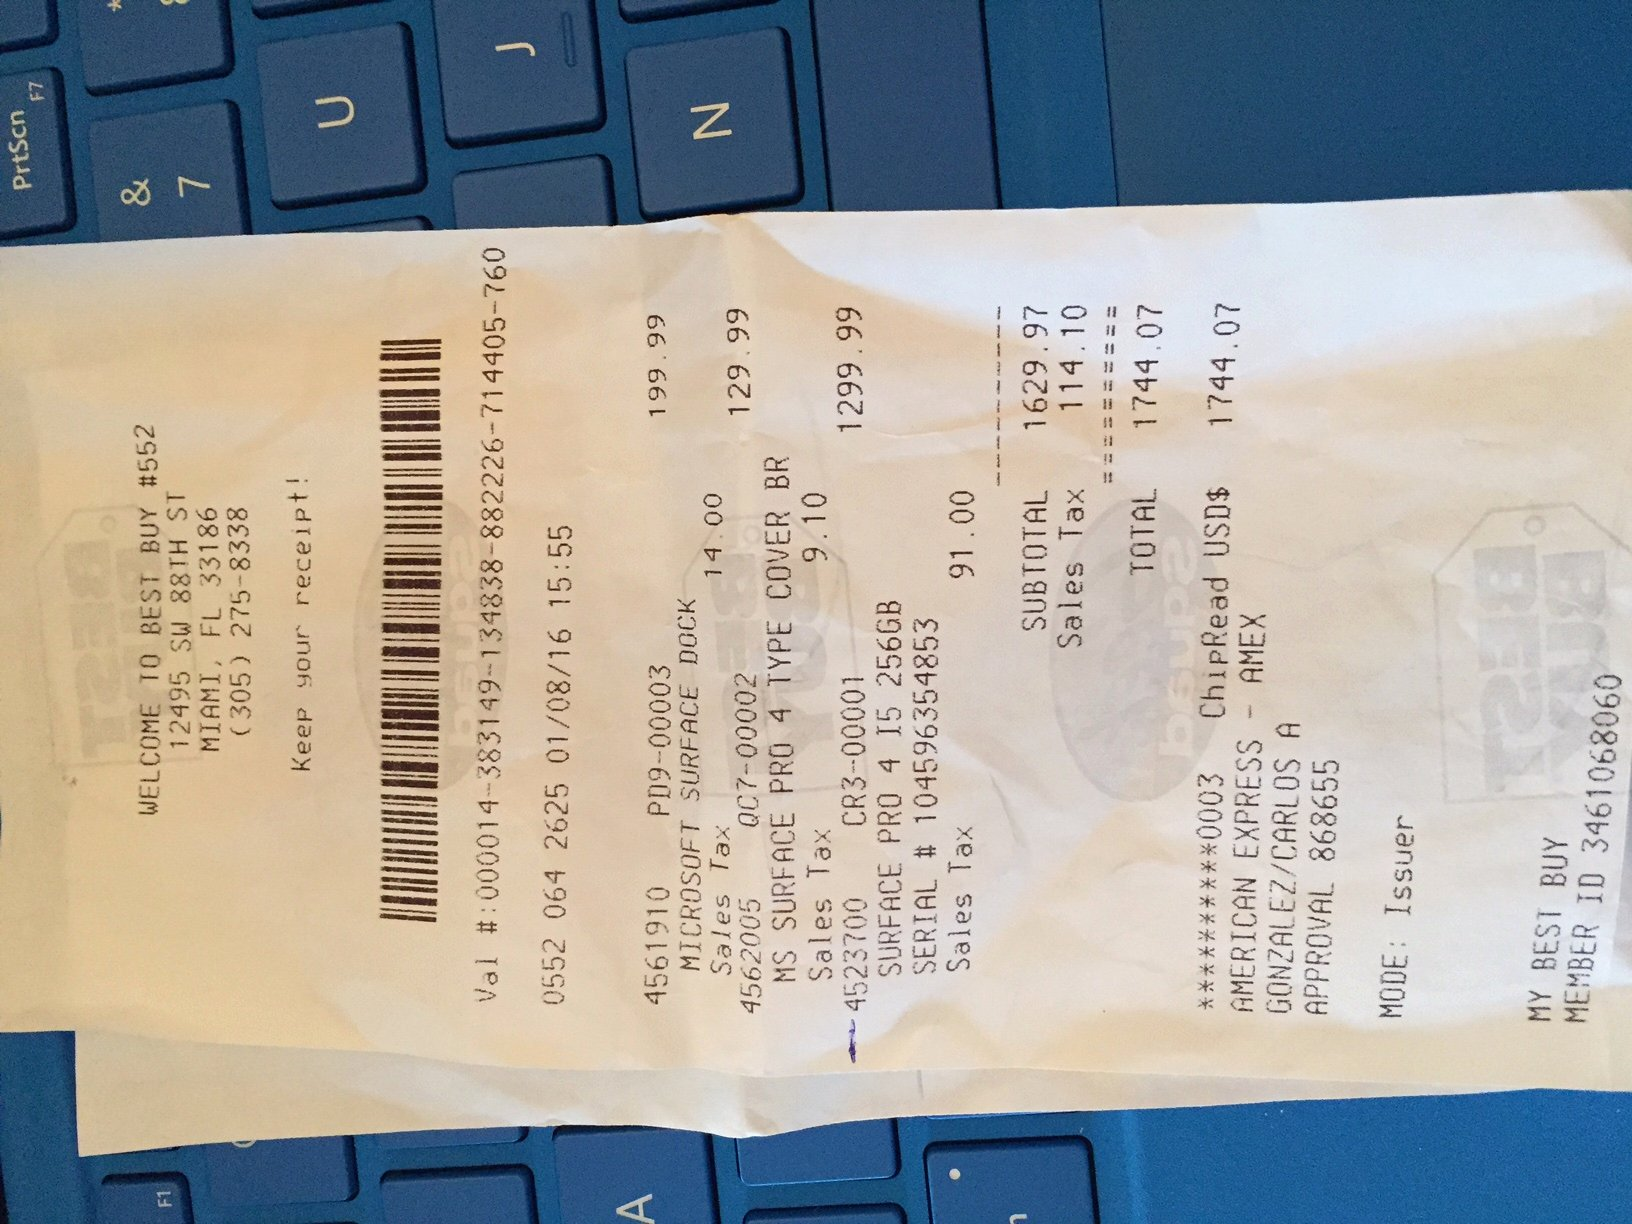 Best Buy Receipt Generator Lovely Pin Best Receipt On Pinterest